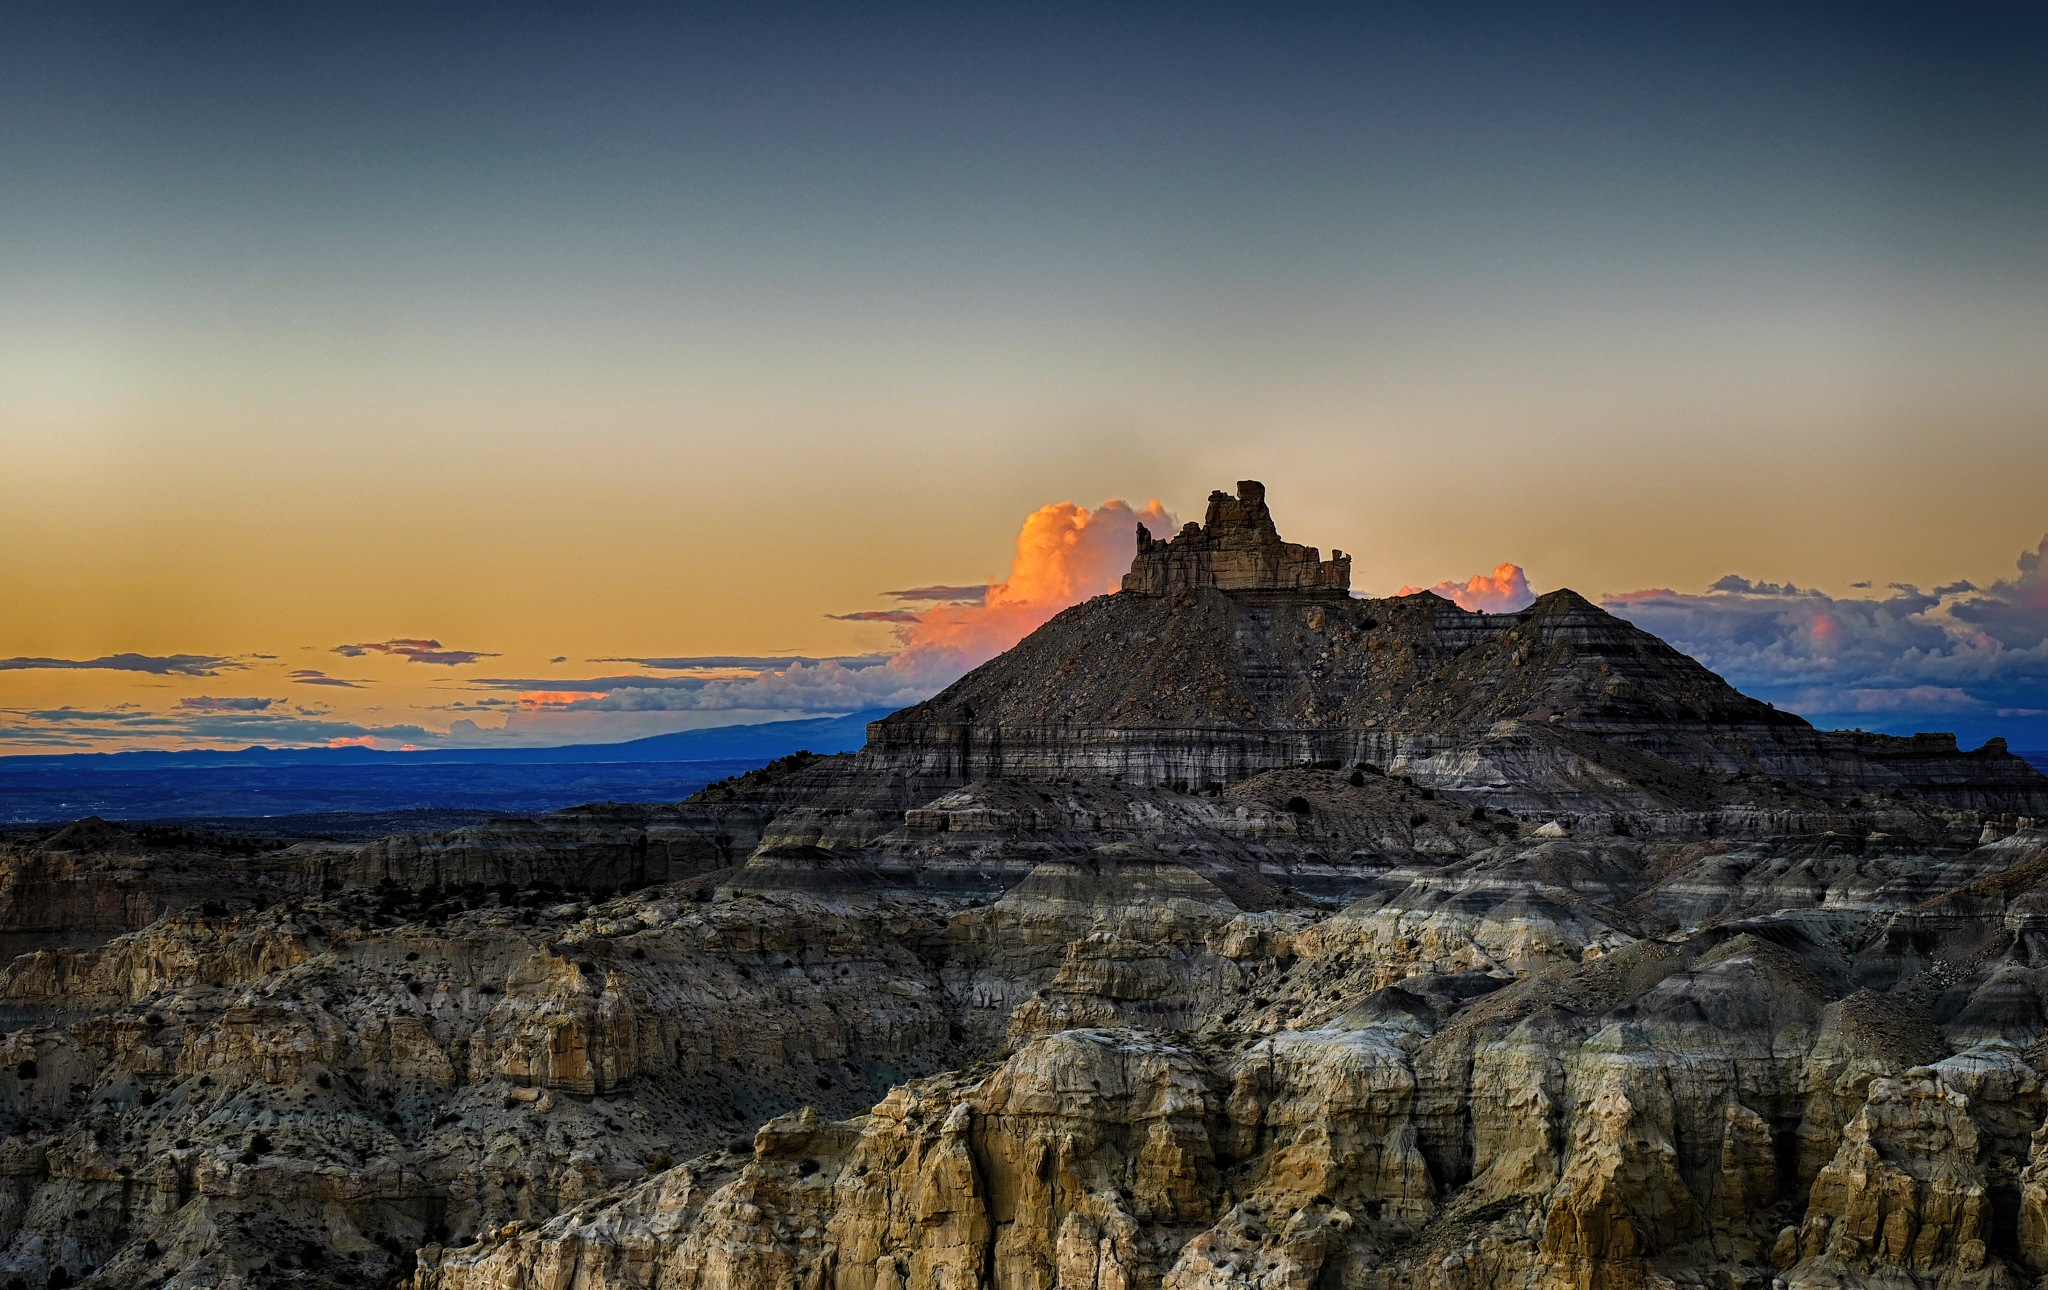 Angel Peak in NM at sunset by emadriss